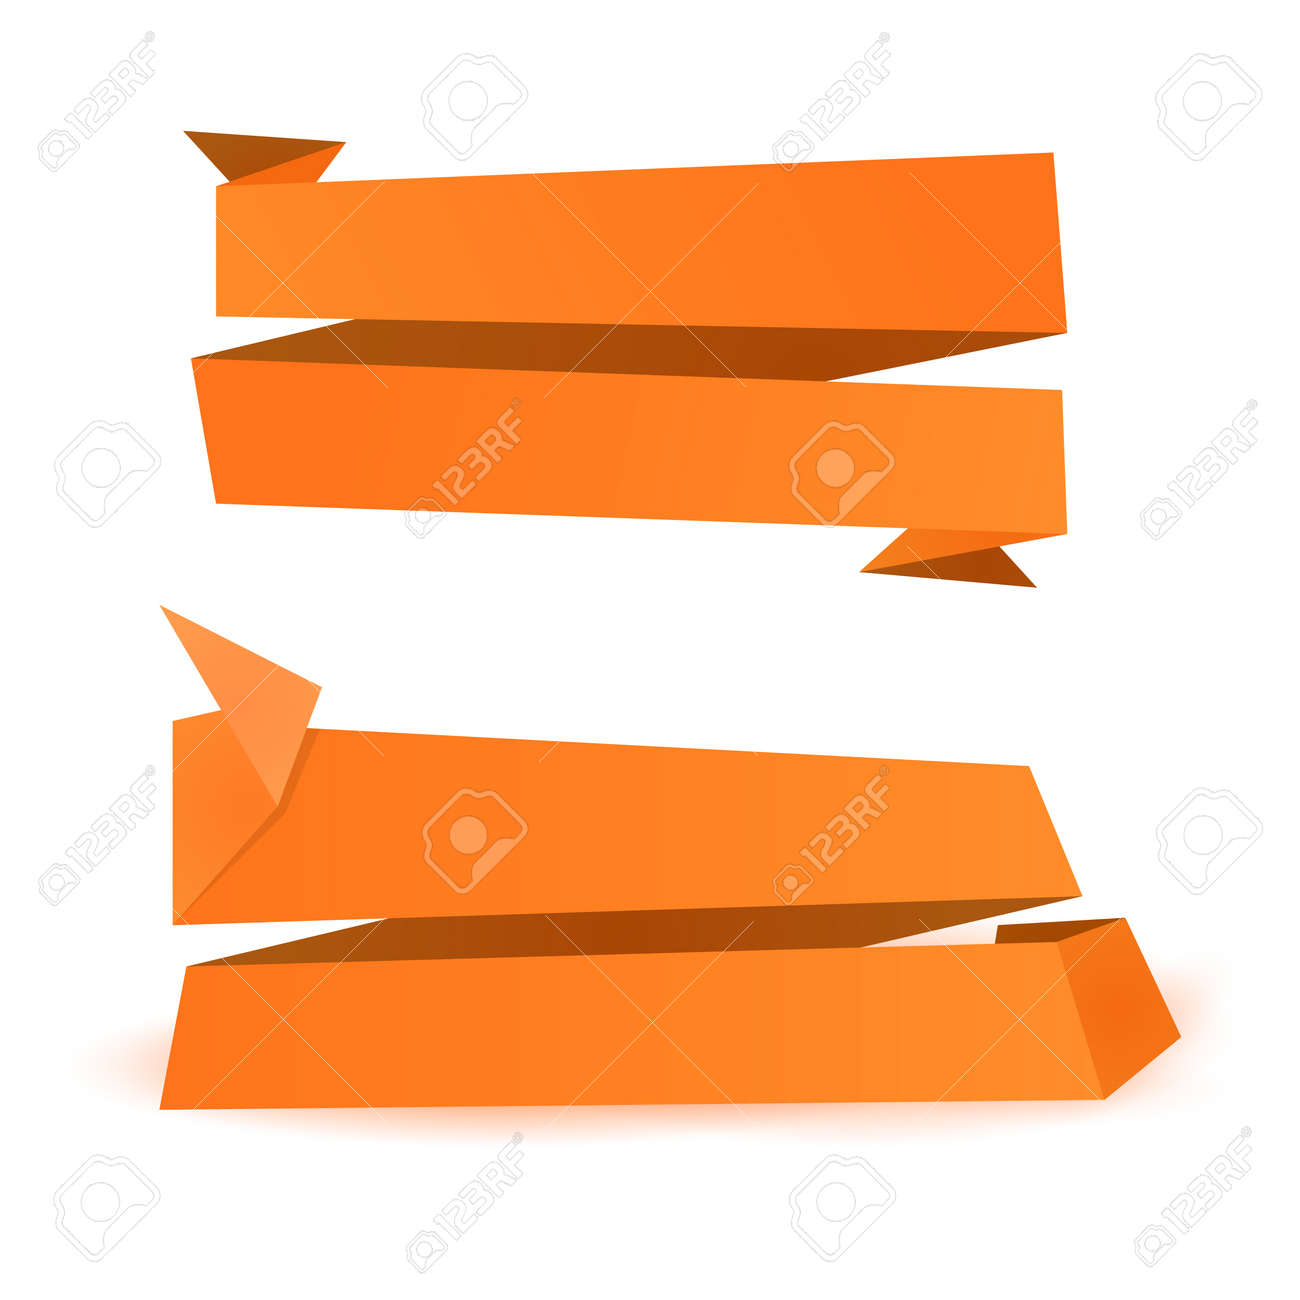 Orange Origami Shapes Background Paper Banner Template Stock Vector